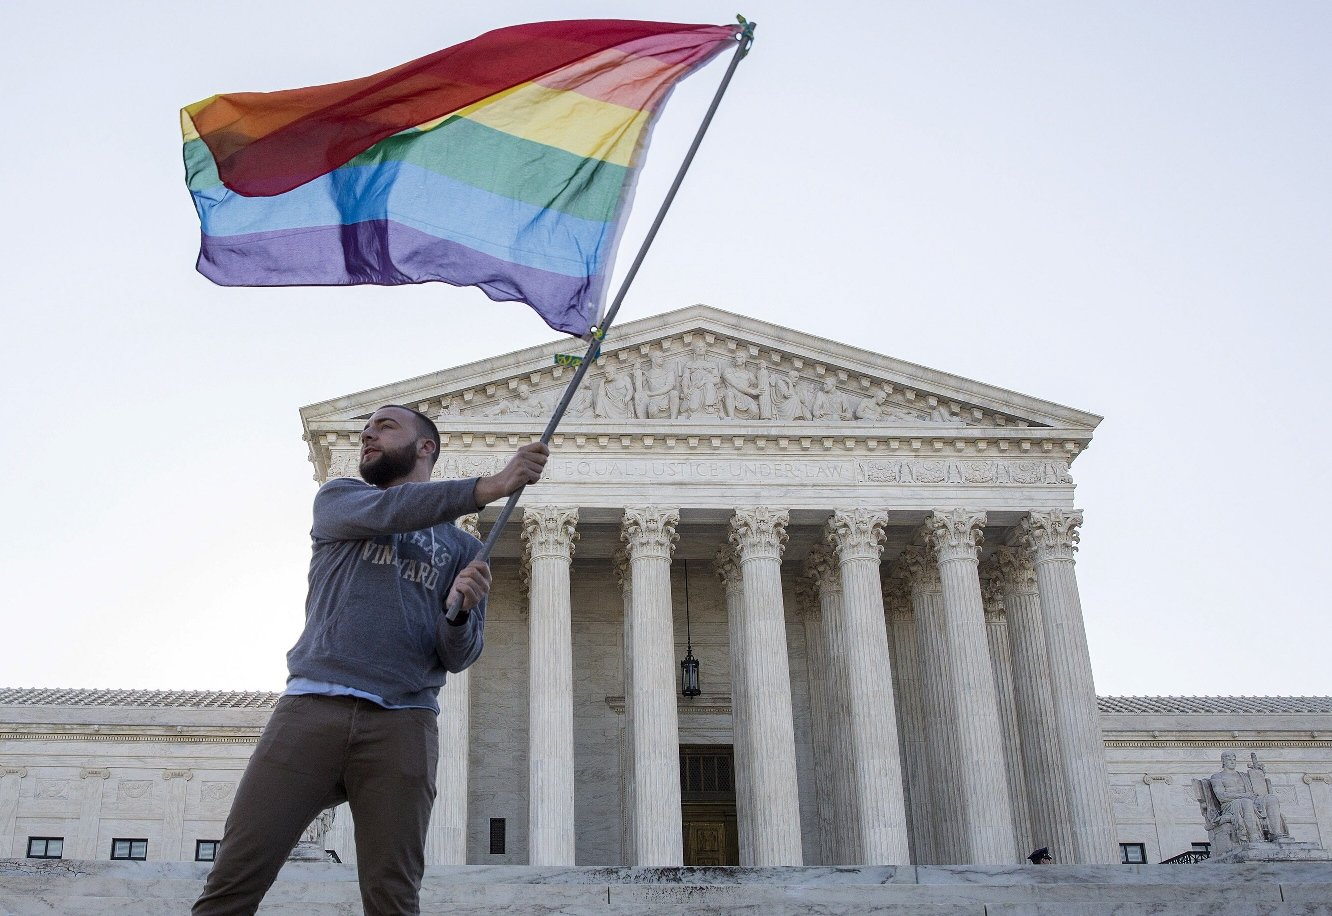 vin testa of washington dc waves a gay rights flag in front of the supreme court before a hearing about gay marriage in washington in an april 28 2015 file photo photo reuters